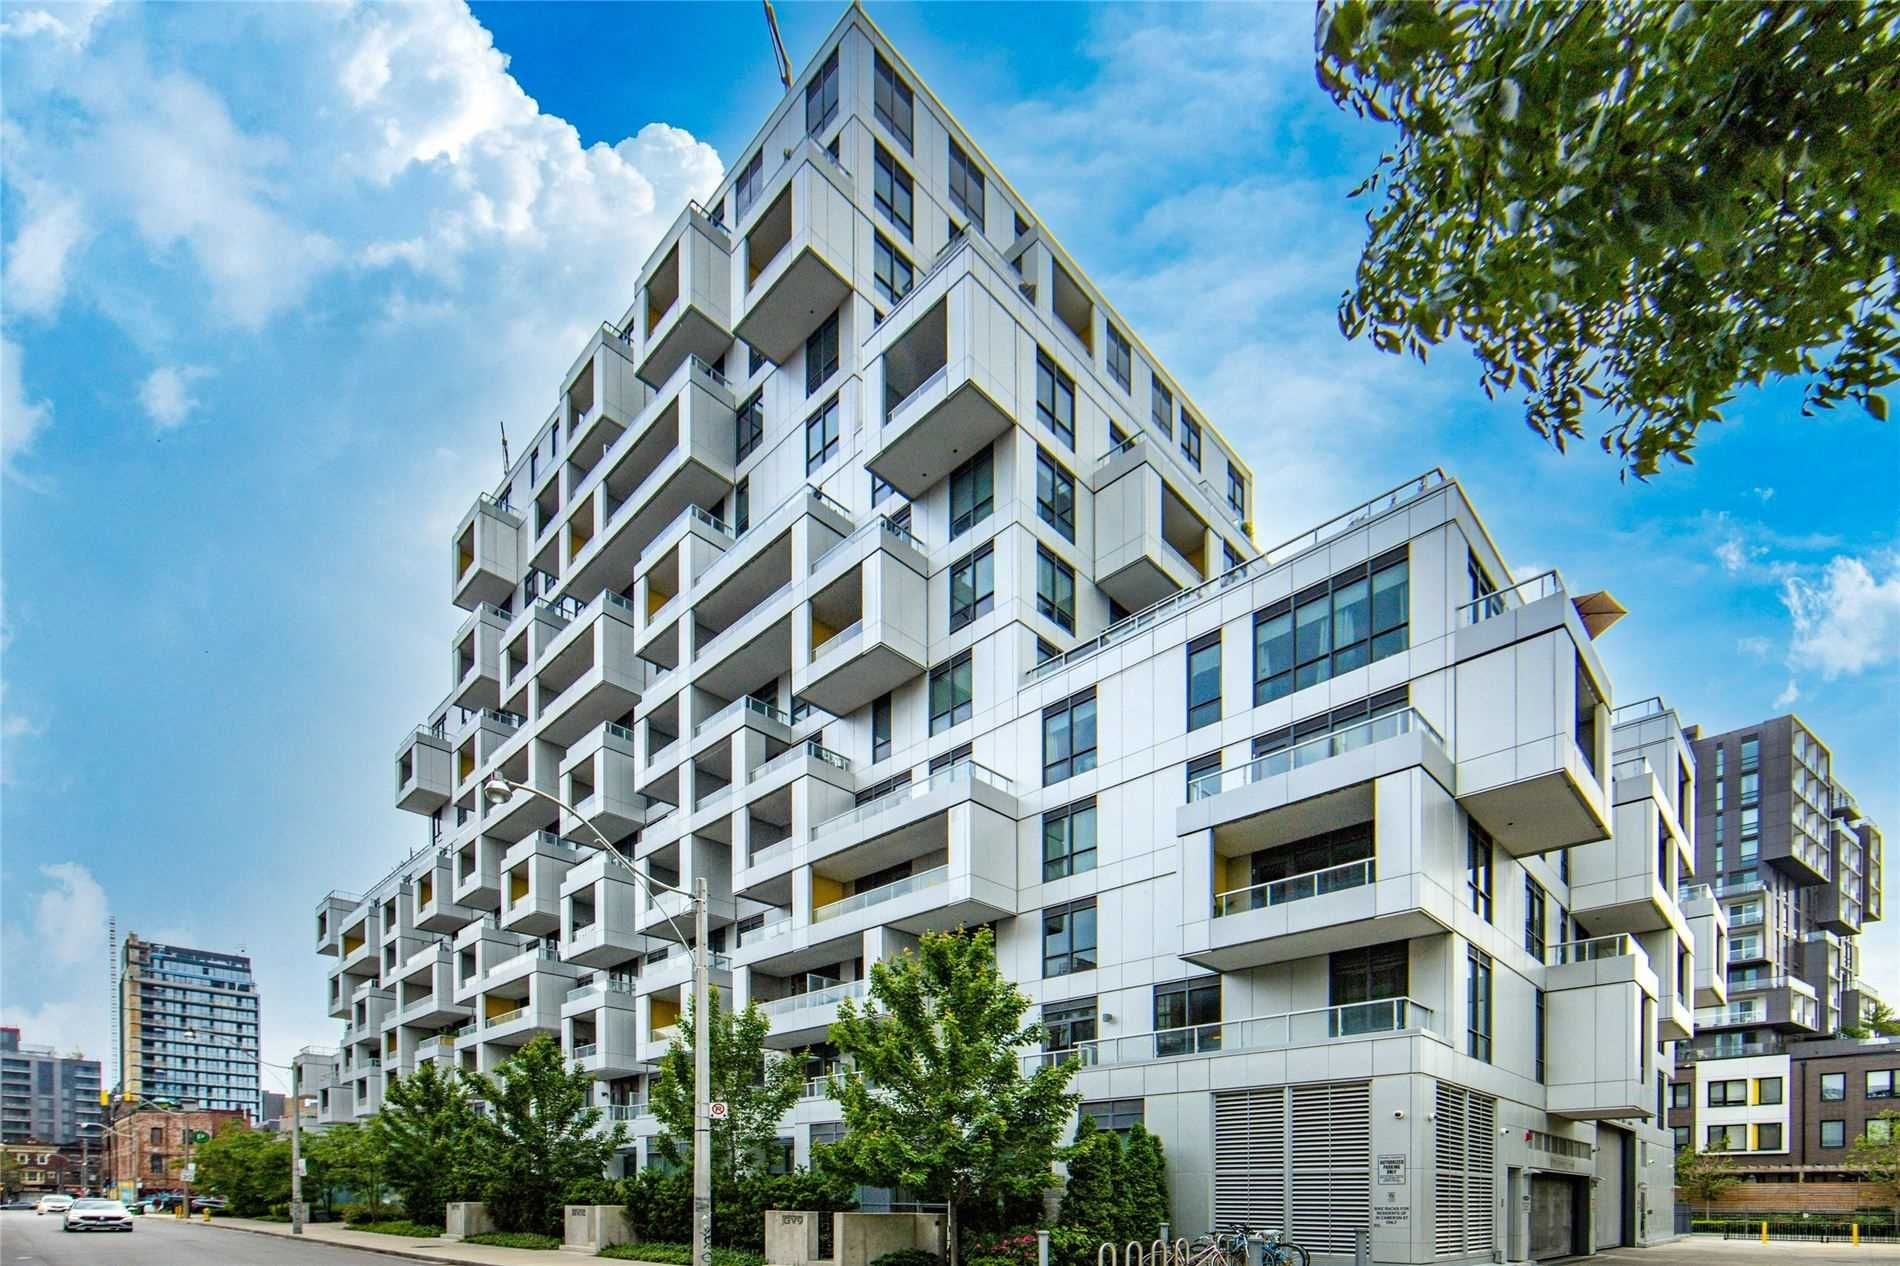 38 Cameron St, unit 1127 for sale in Toronto - image #1